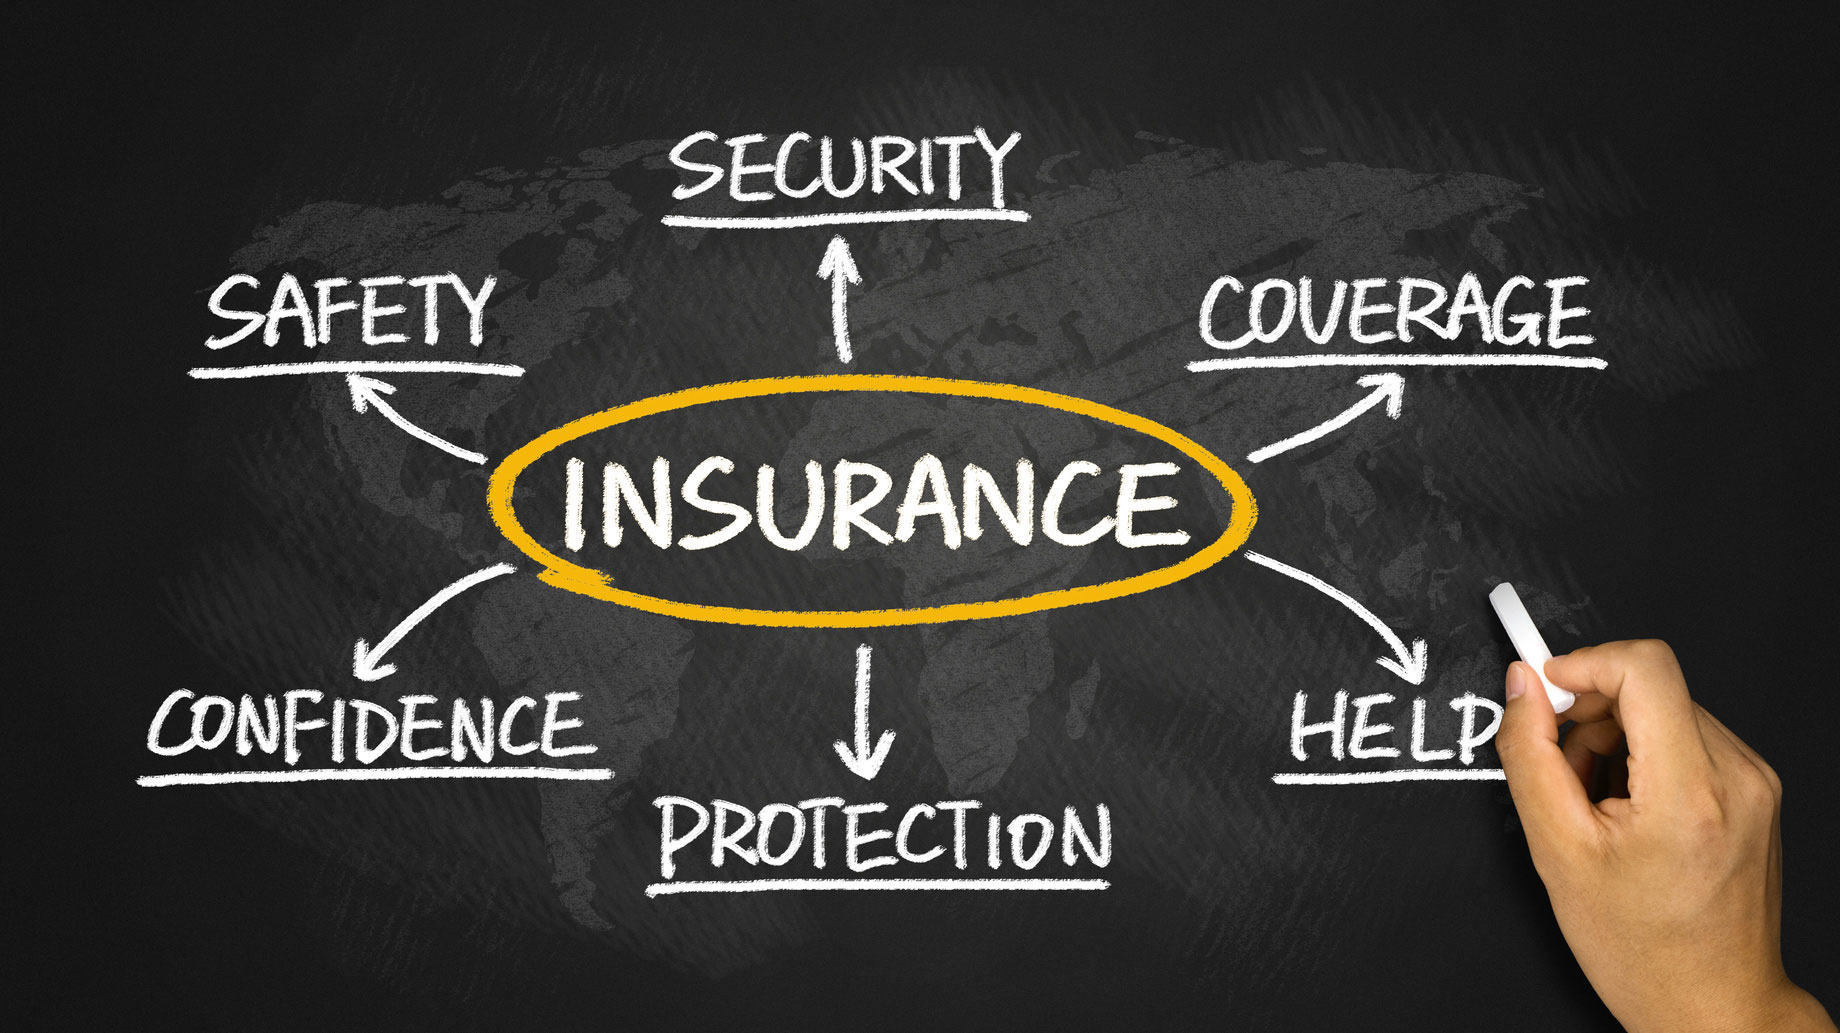 Shopping for Piano Insurance coverage On-line? Right here is Your Information For The Greatest Purchase